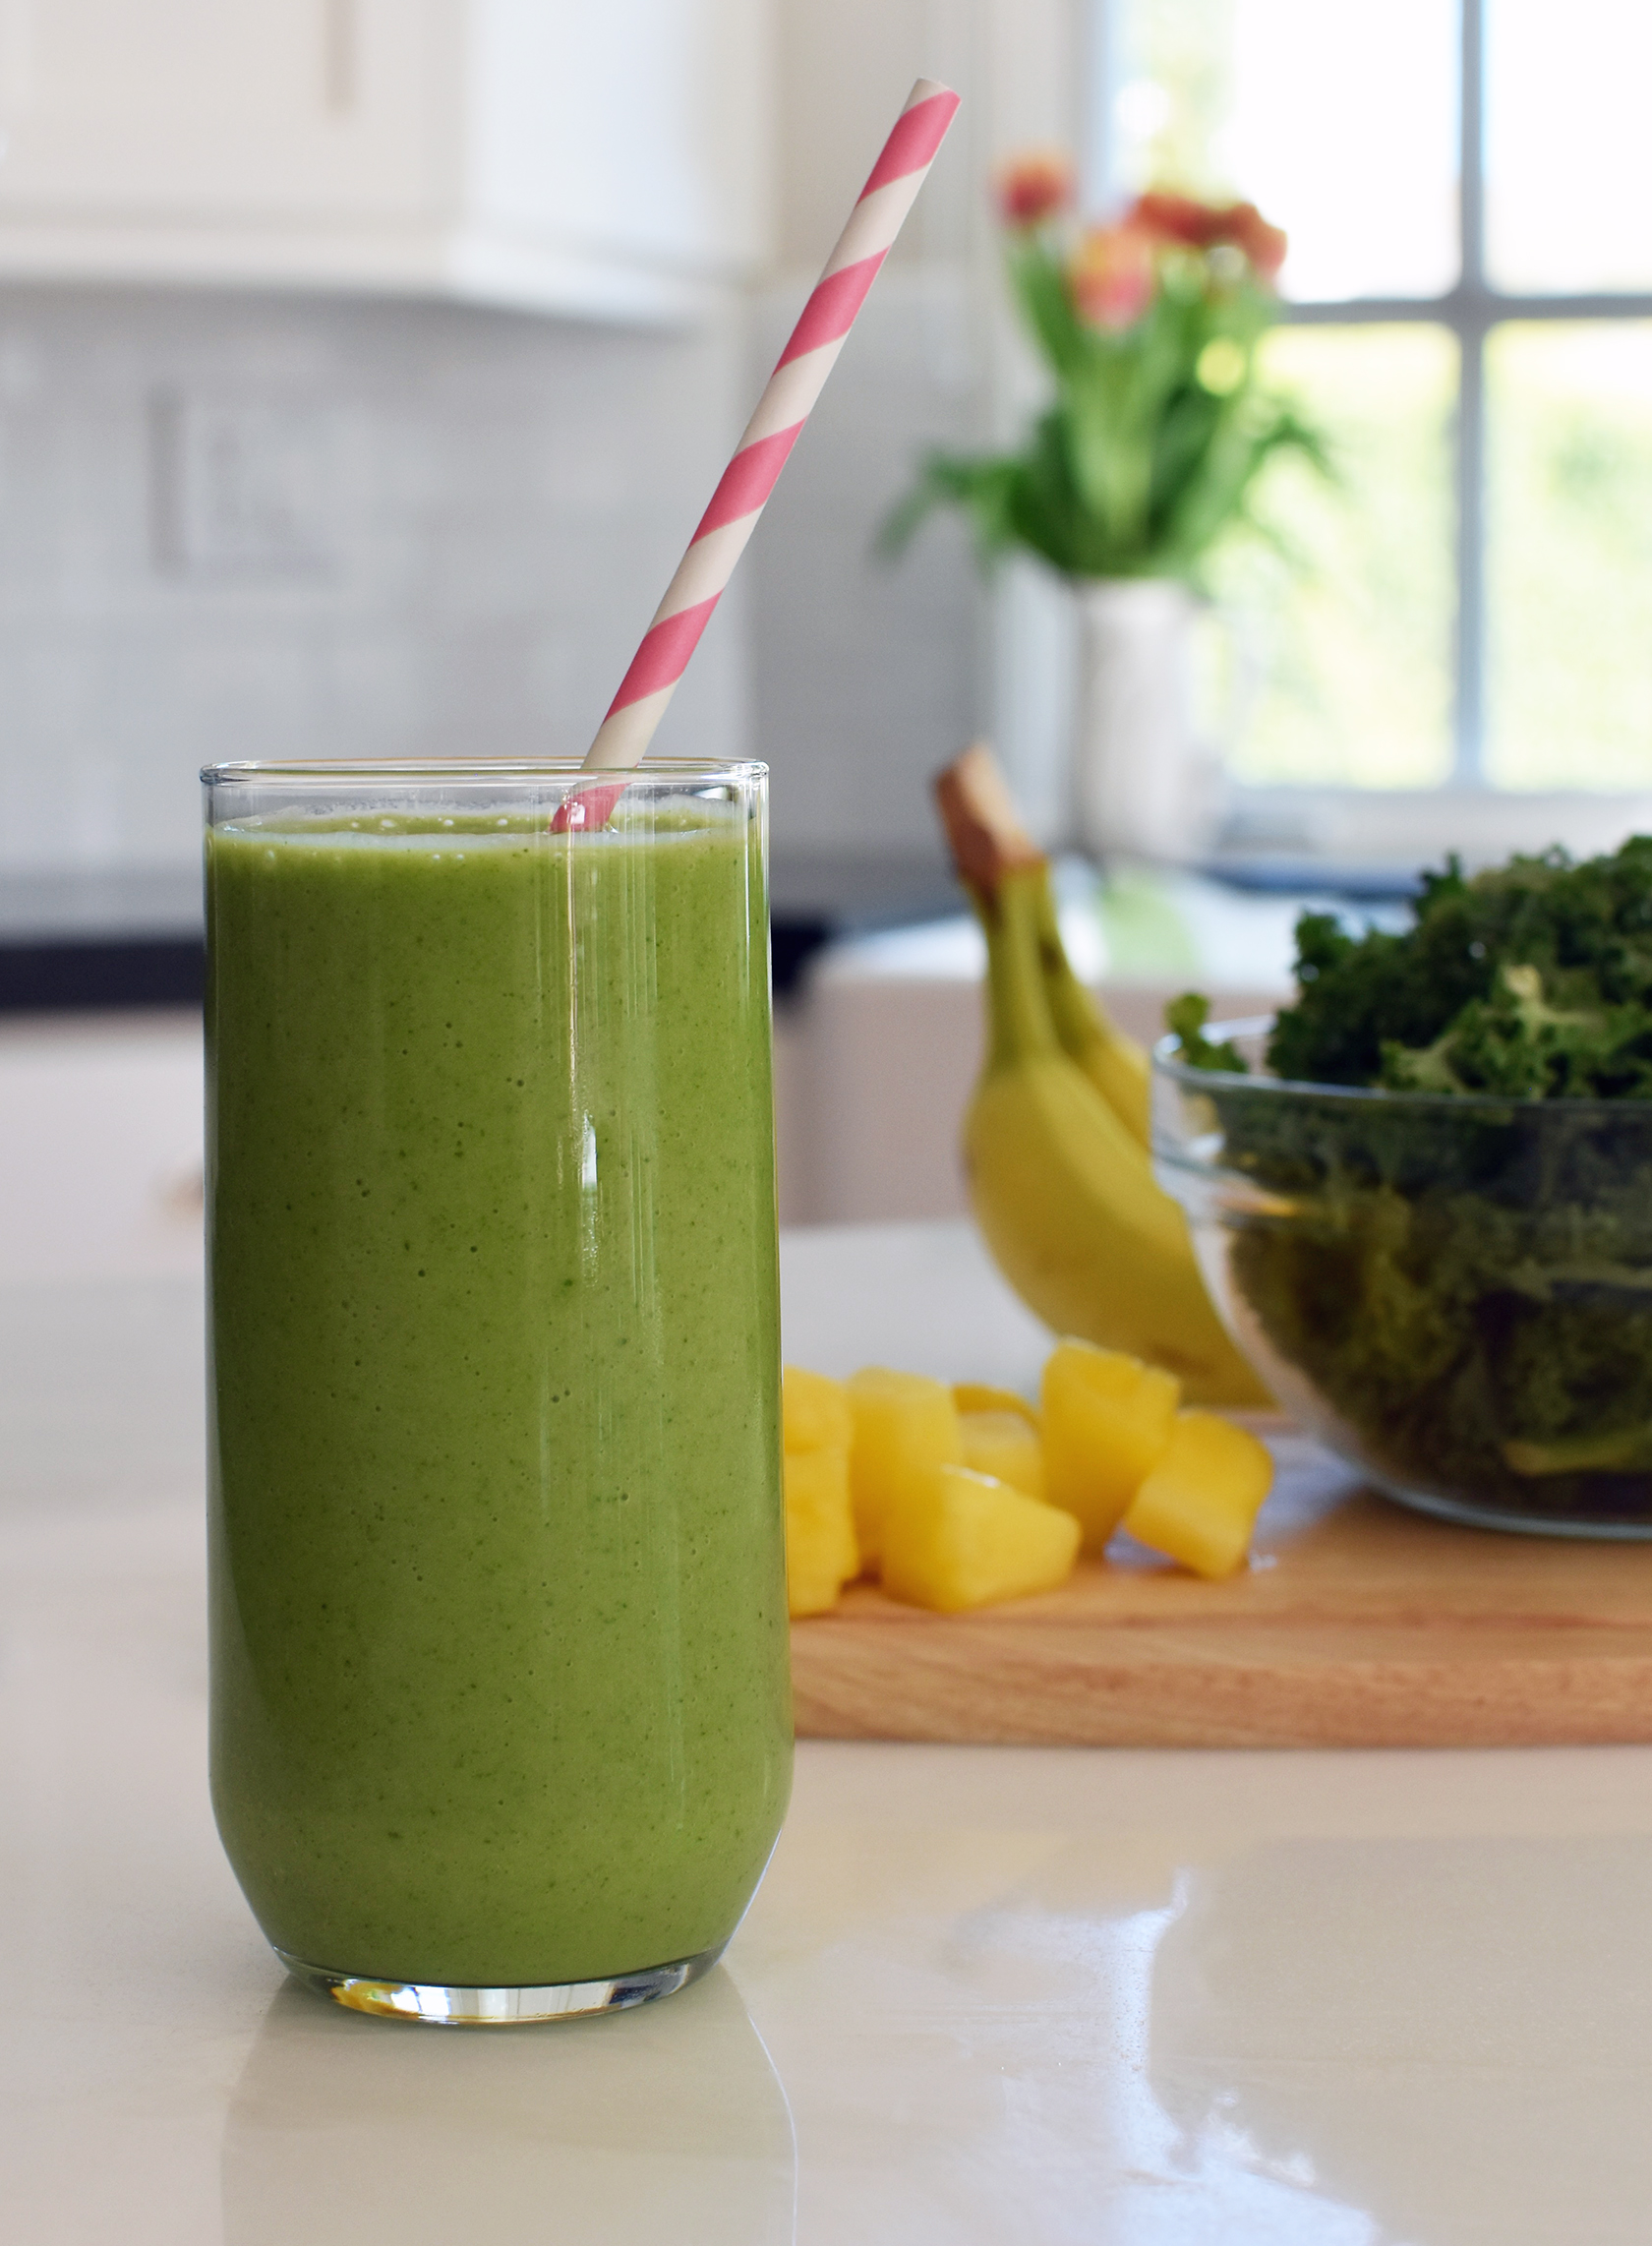 Sydne Style shares easy green smoothie recipe with kale pineapple banana